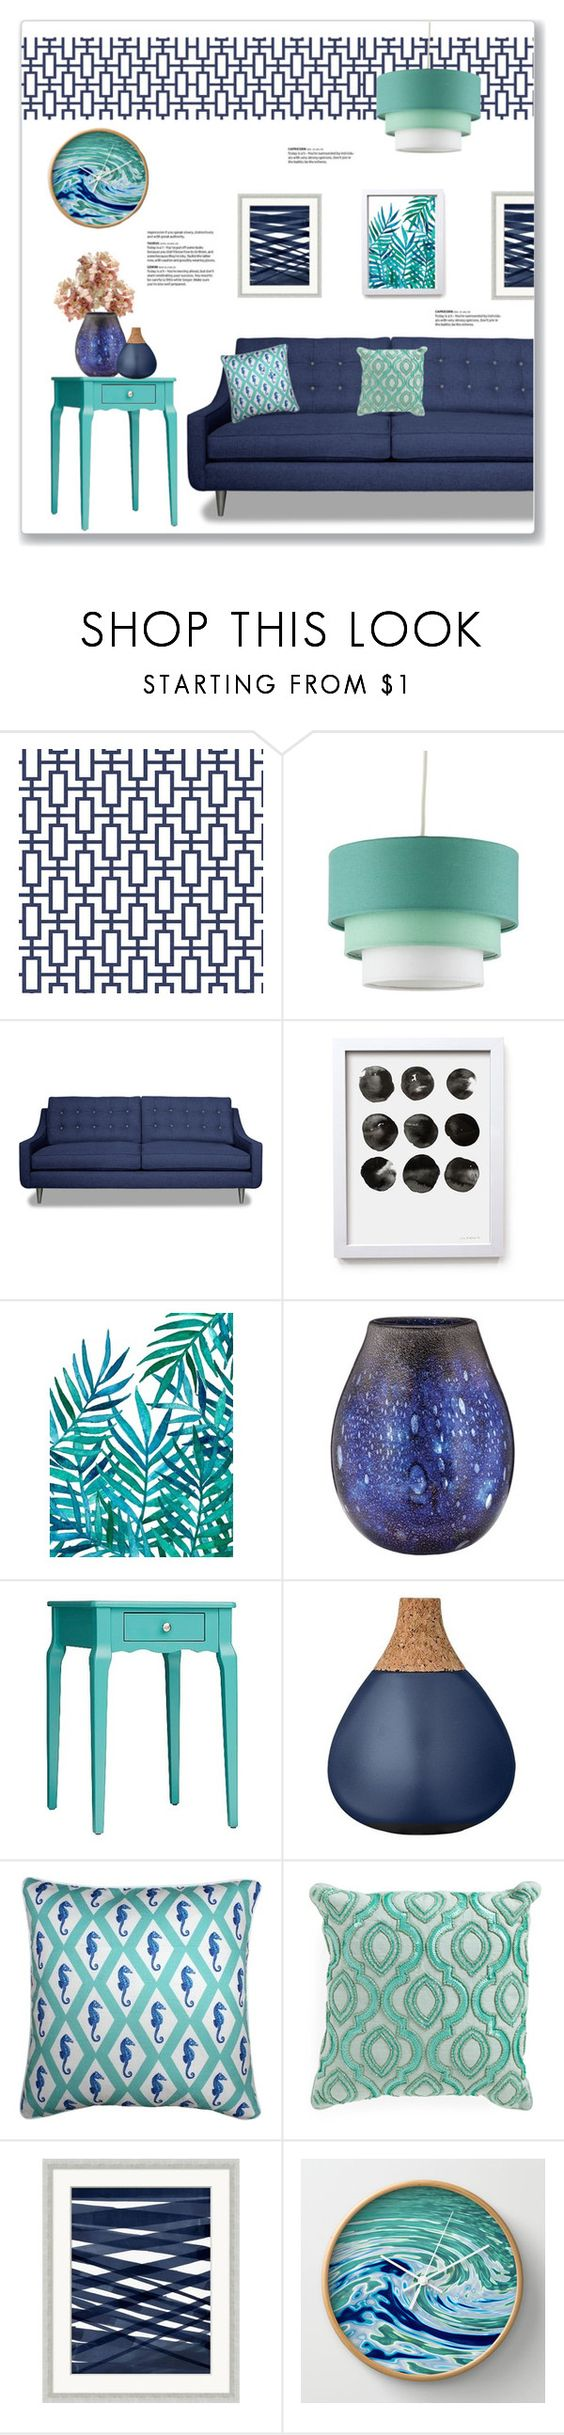 """""""Teal & Navy Living Room"""" by kellylynne68 ❤ liked on Polyvore featuring interior, interiors, interior design, home, home decor, interior decorating, Waterford, Inspire Q, Bloomingville and Pillow Decor"""